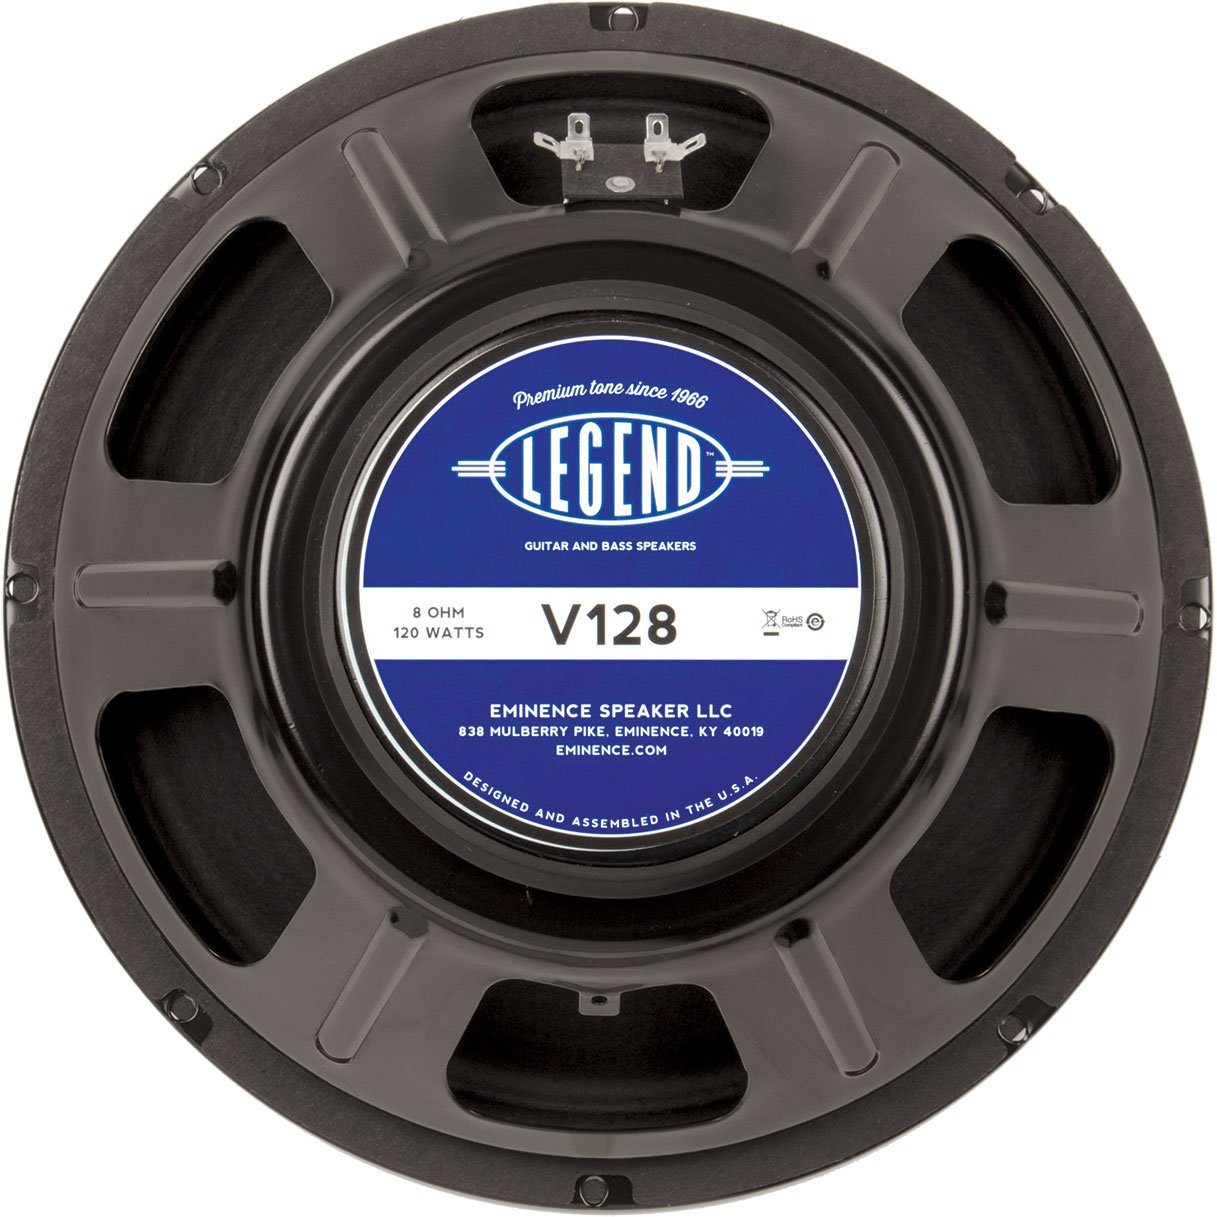 "Eminence Legend V128 12"" Guitar Speaker 120W 8 Ohm"